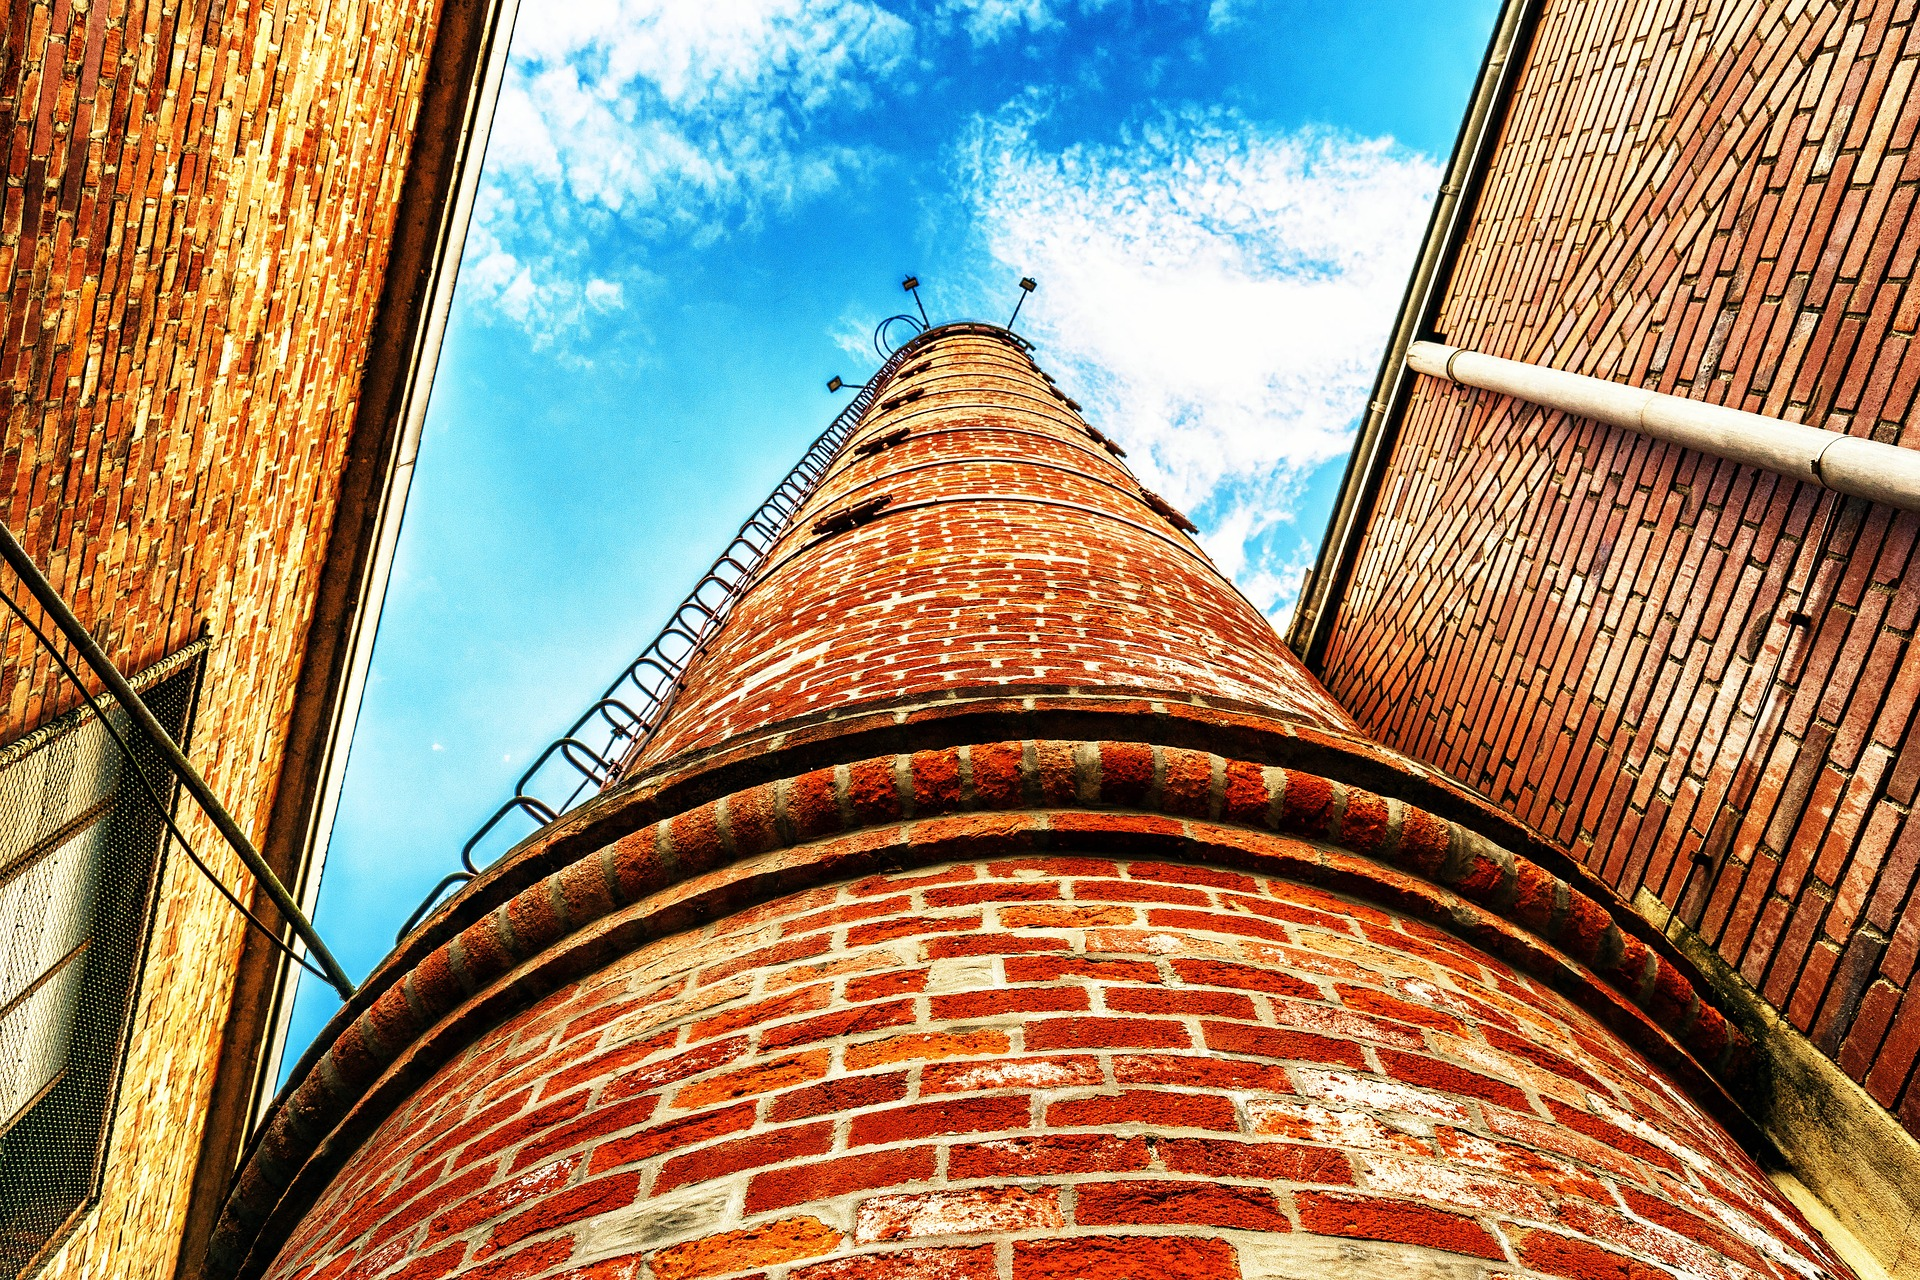 Chimney reaching up to a blue sky, seen from below